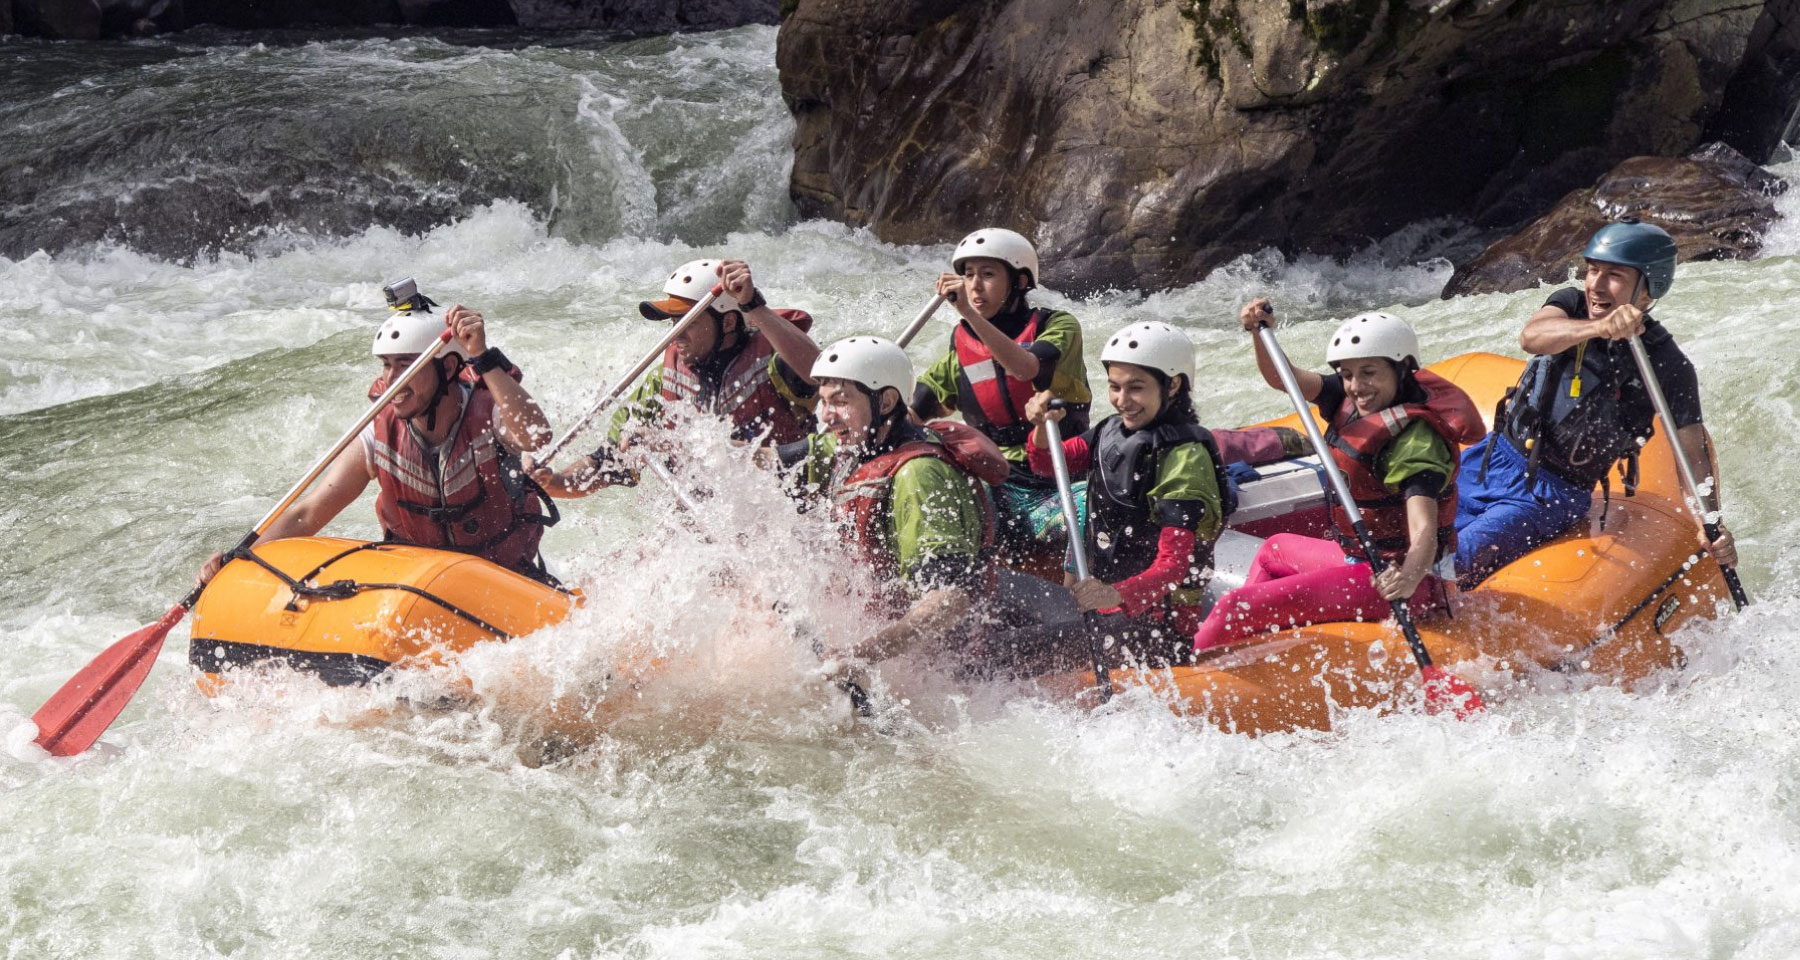 Rafting in Jondachi river in the middle of the jungle in Southamerica